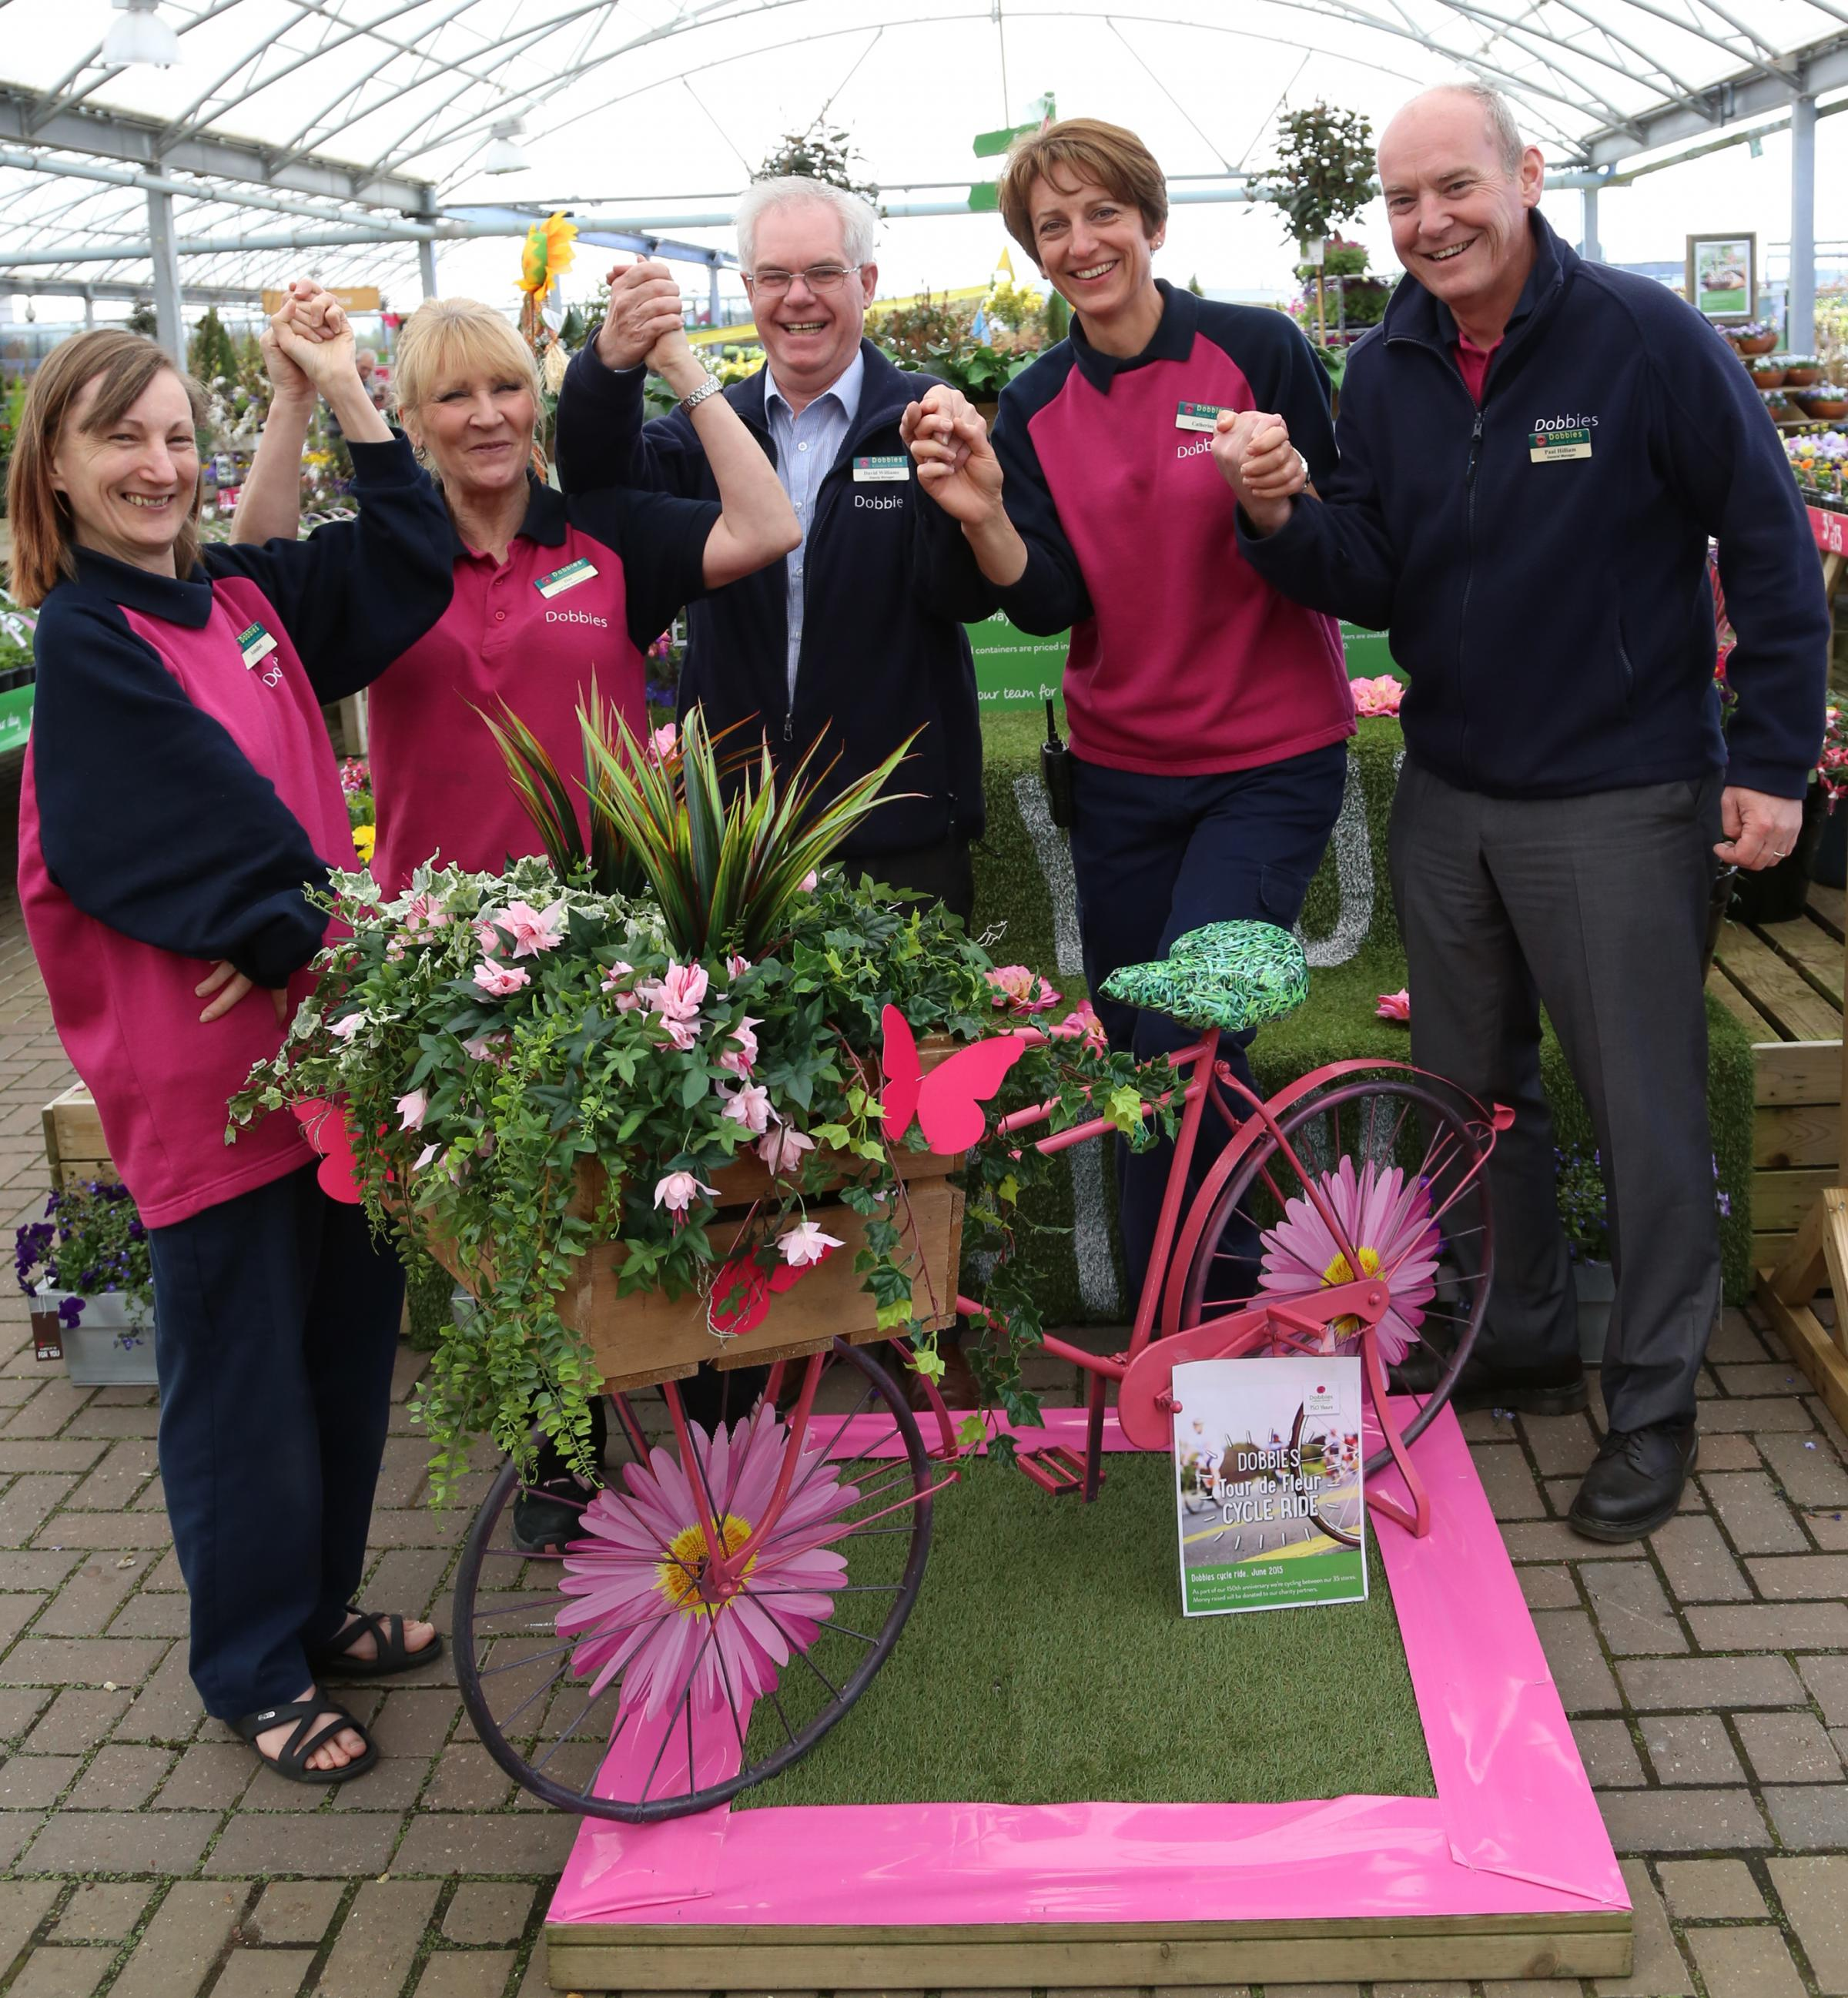 Dobbies Garden Centre In Cirencester Will Celebrate 150th Year In